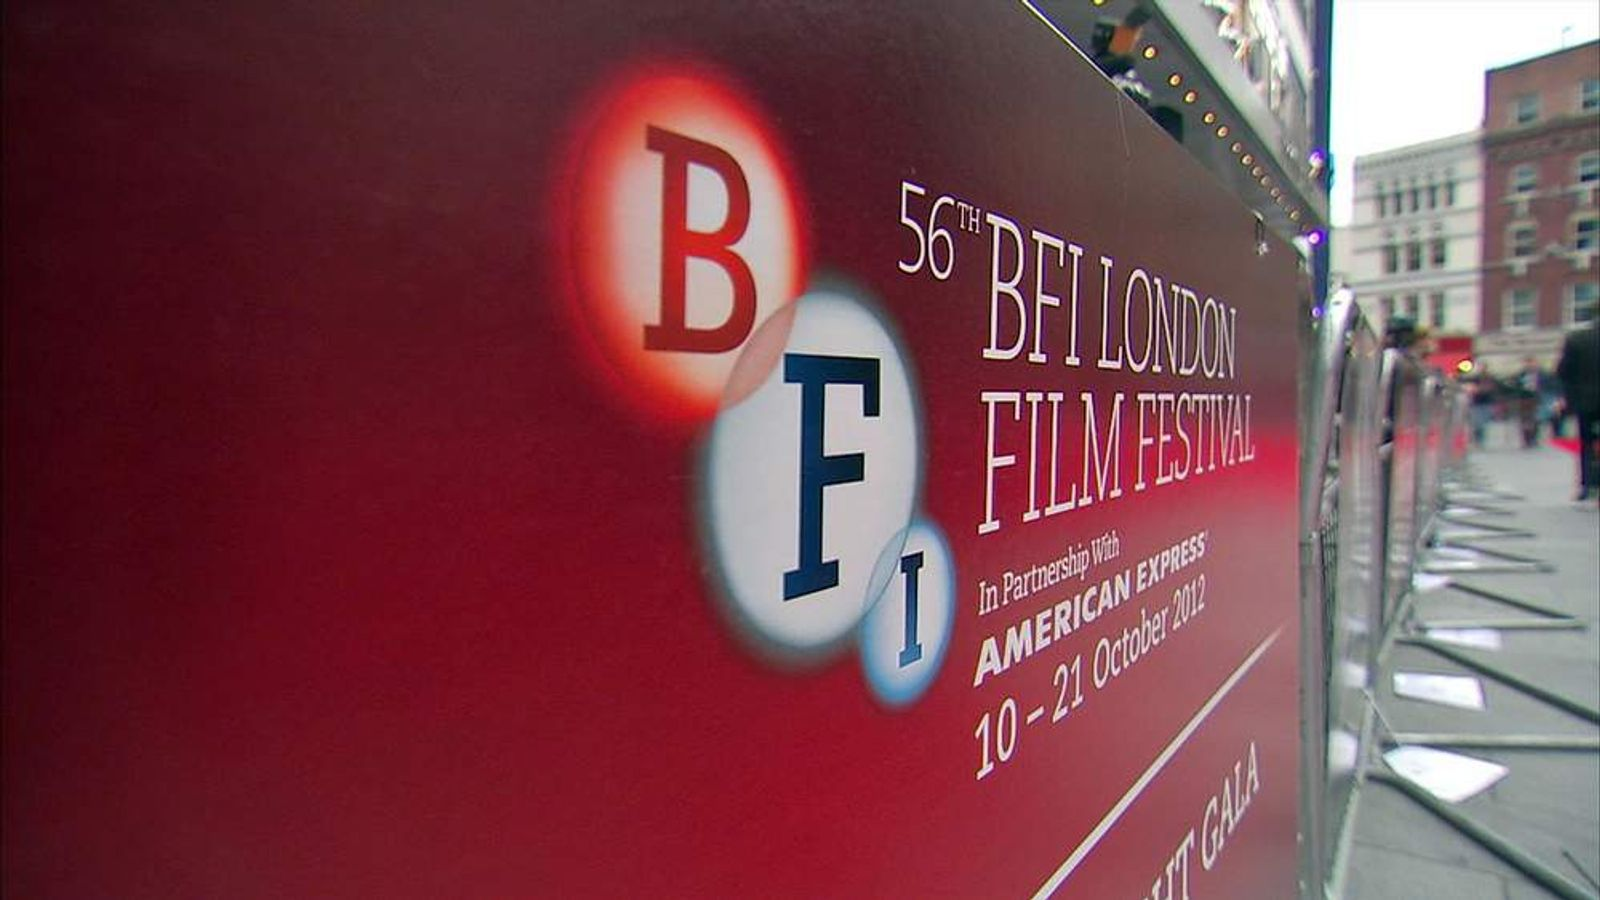 The London Film Festival is in its 56th year